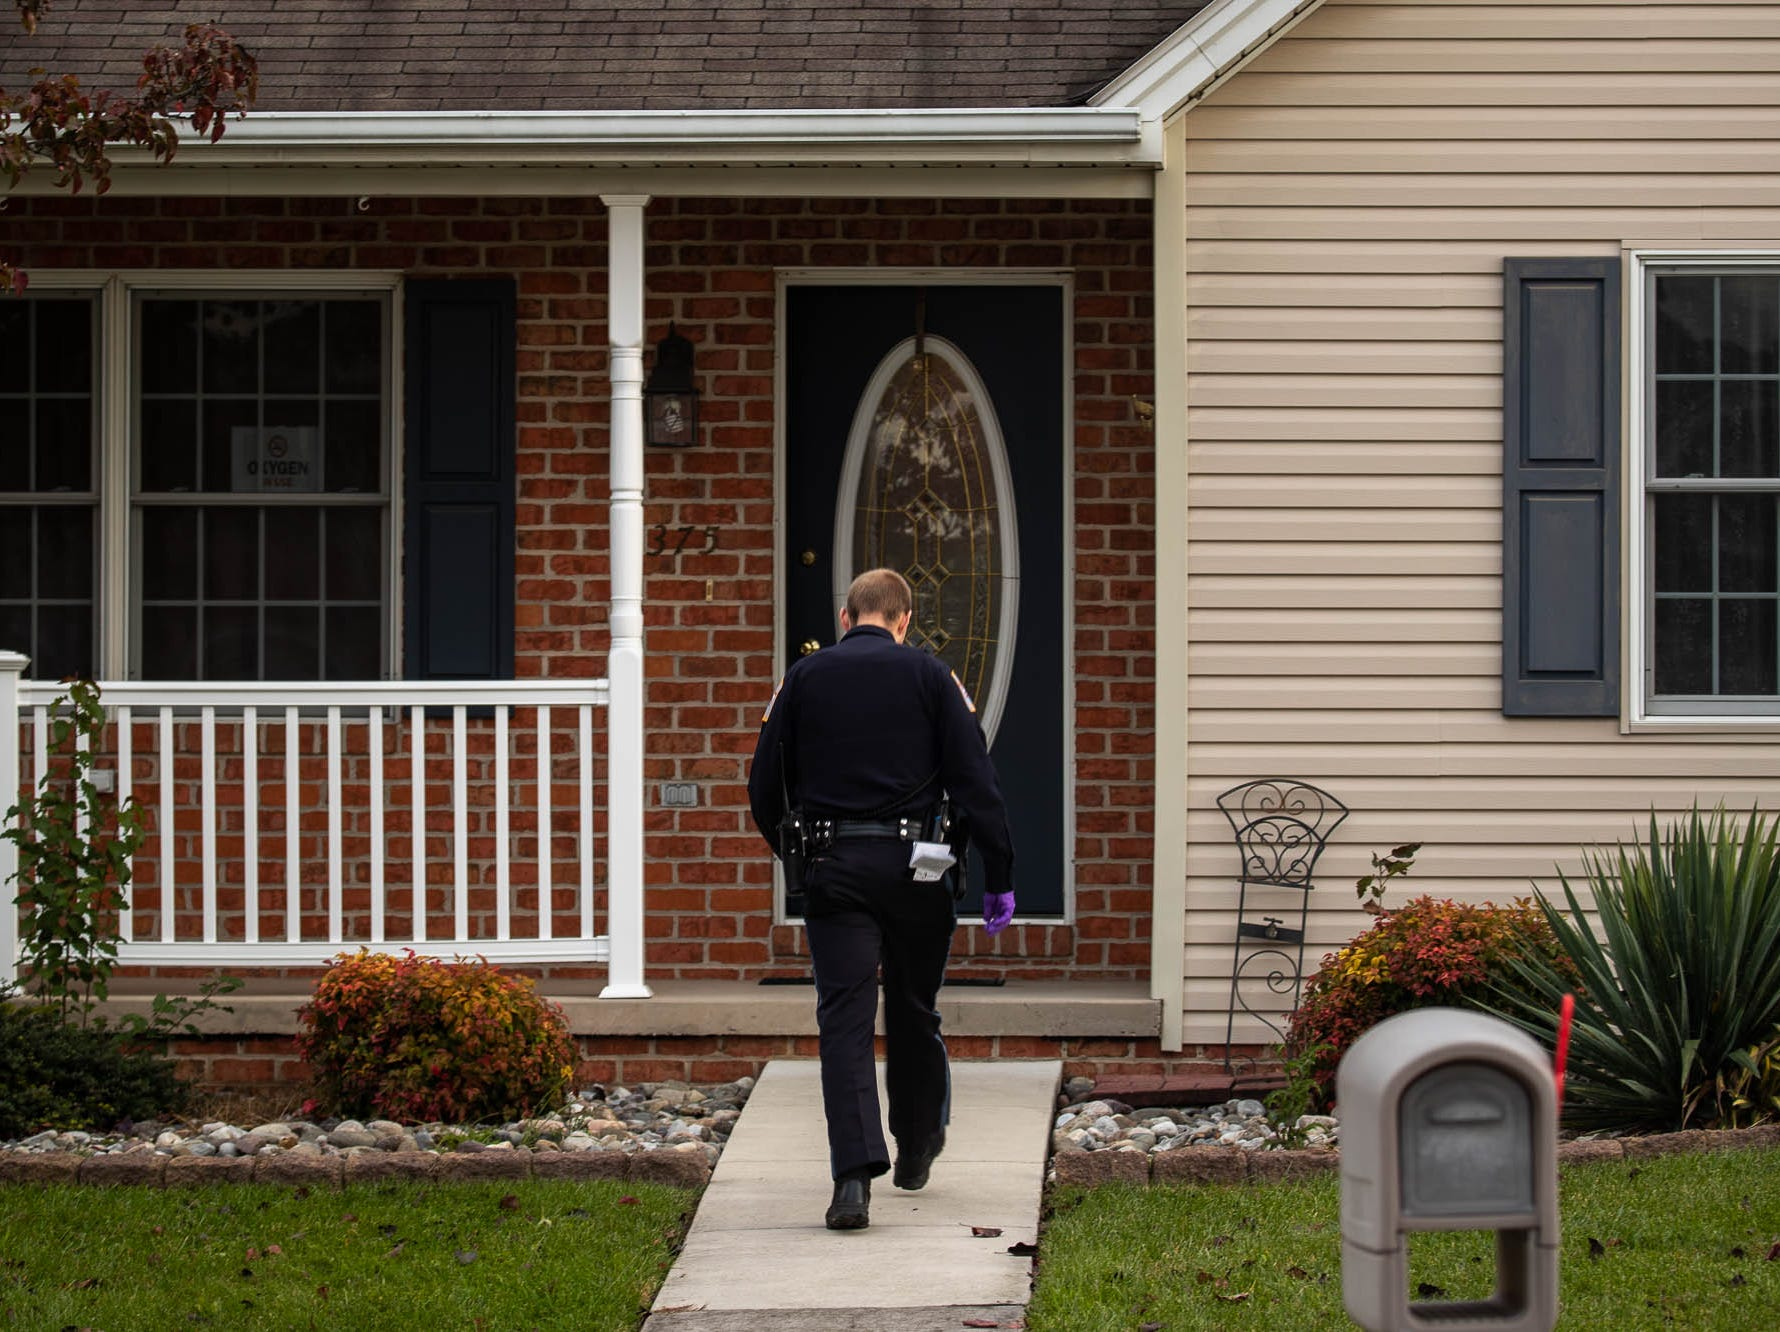 Police investigate the scene of a domestic-related stabbing on the 300 block of Lexington Way, Monday, Oct. 29, 2018, in Littlestown. Littlestown Police Chief Charles Keller said that a 70-year-old woman stabbed a 69-year-old man, and the man was flown to York Hospital.